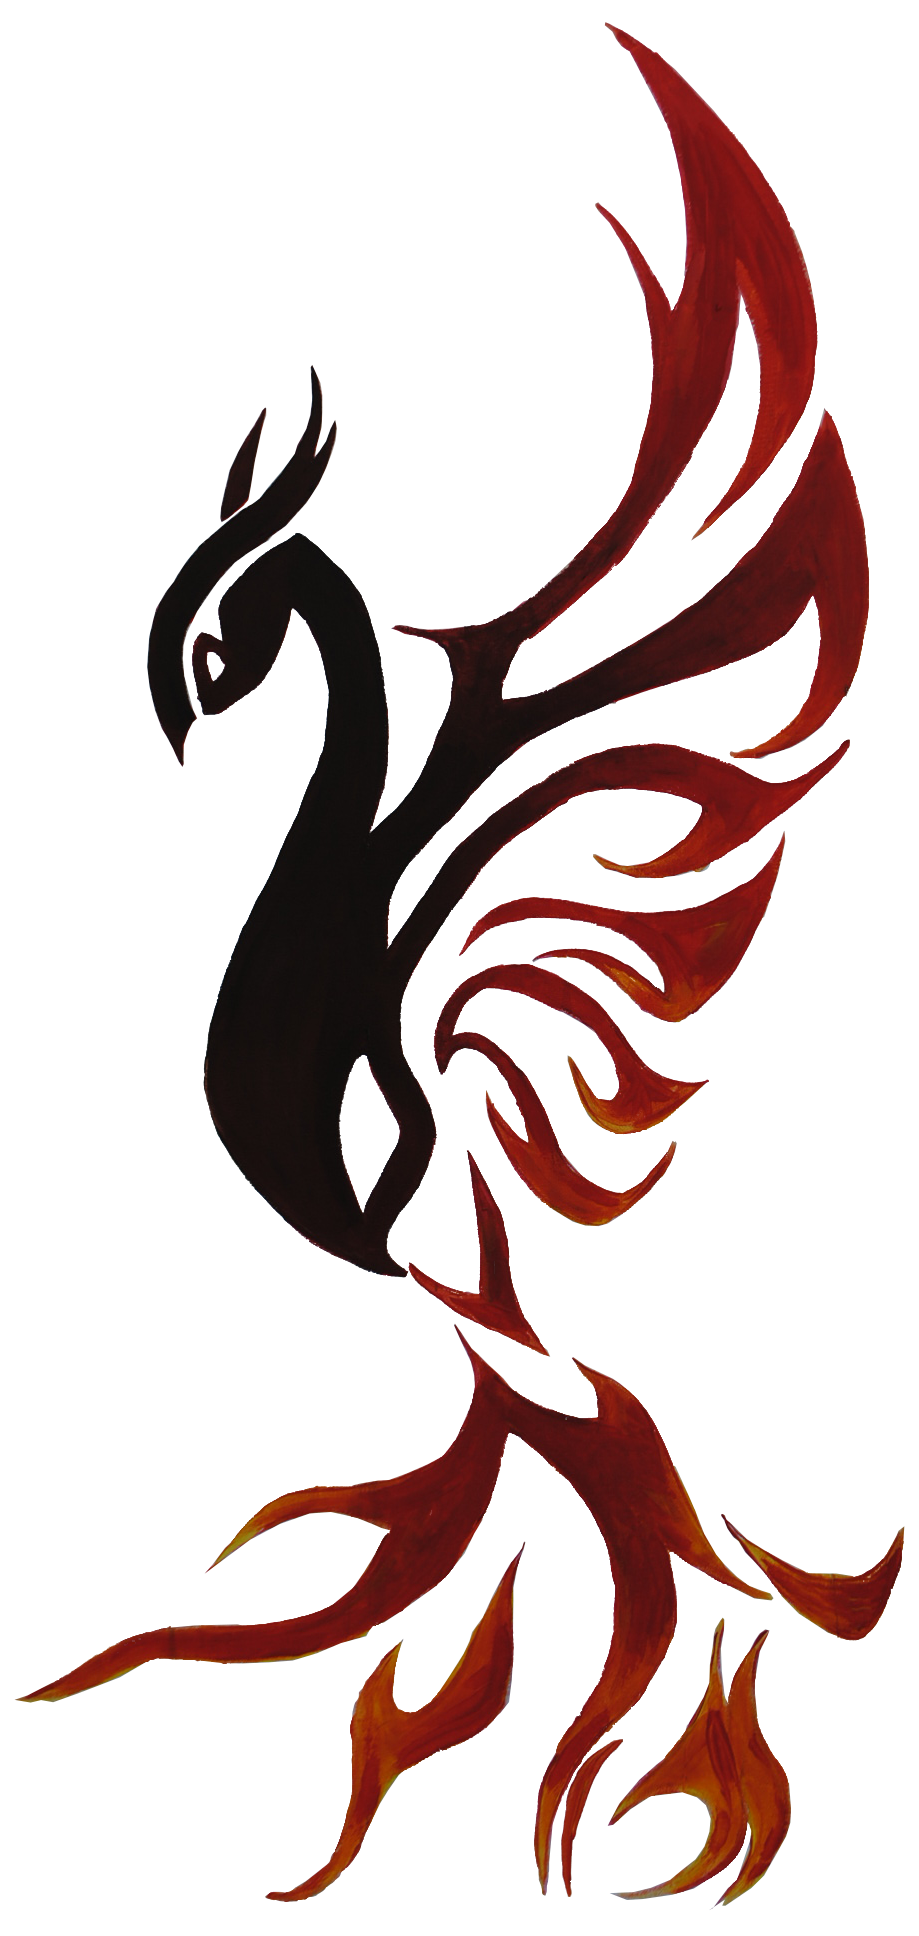 HD Phoenix Wallpapers and Photos, 919x1936 | By Yuriko ...